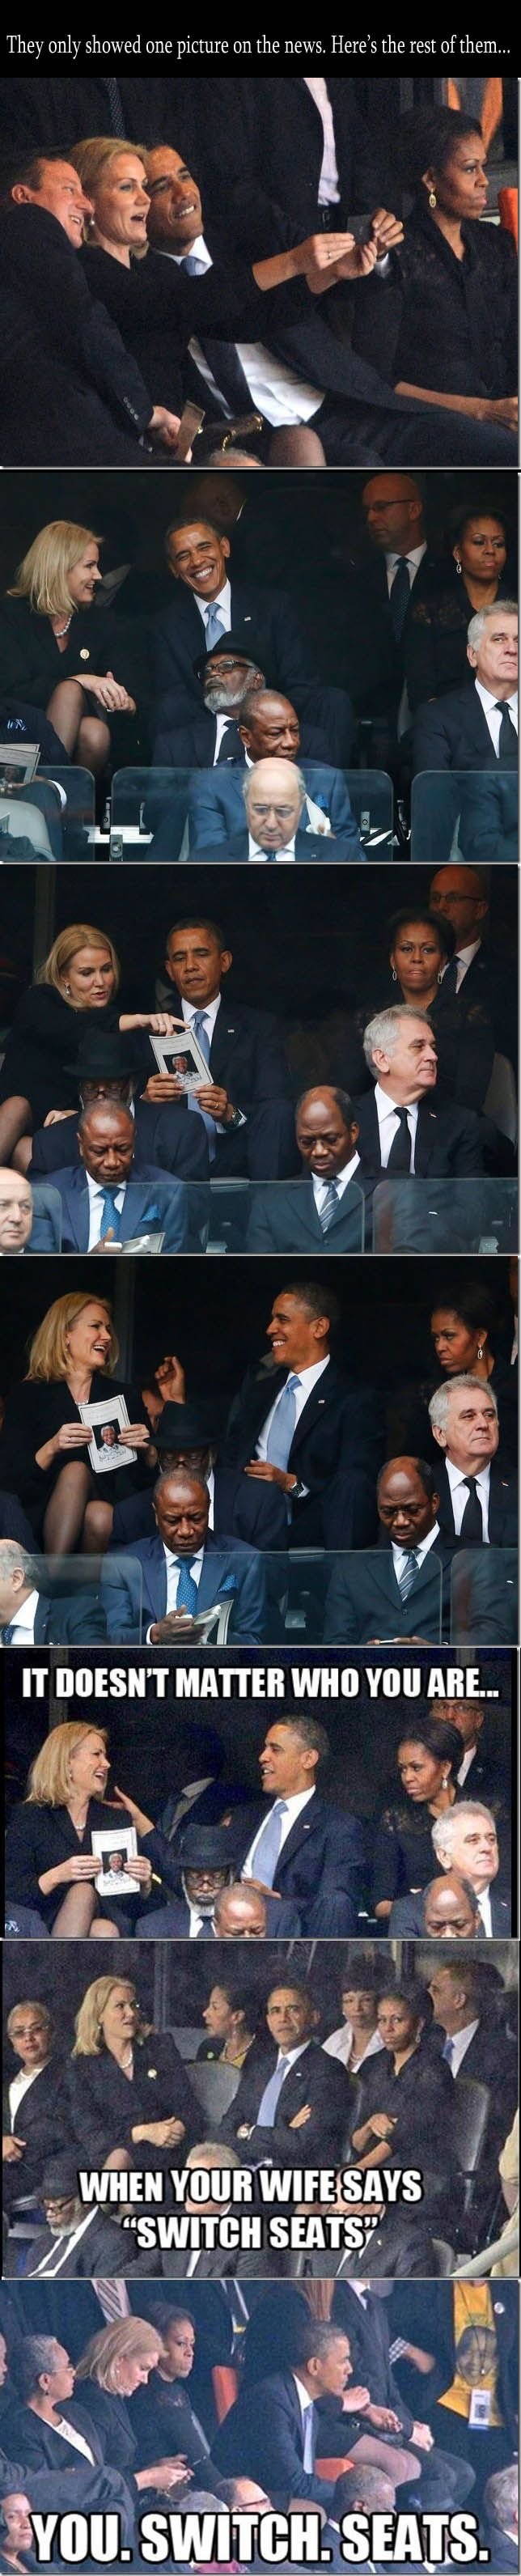 """Obama & Michelle at Nelson Mandela's Funeral - It doesn't matter who you are, when you're wife says """"switch seats""""...you switch seats."""